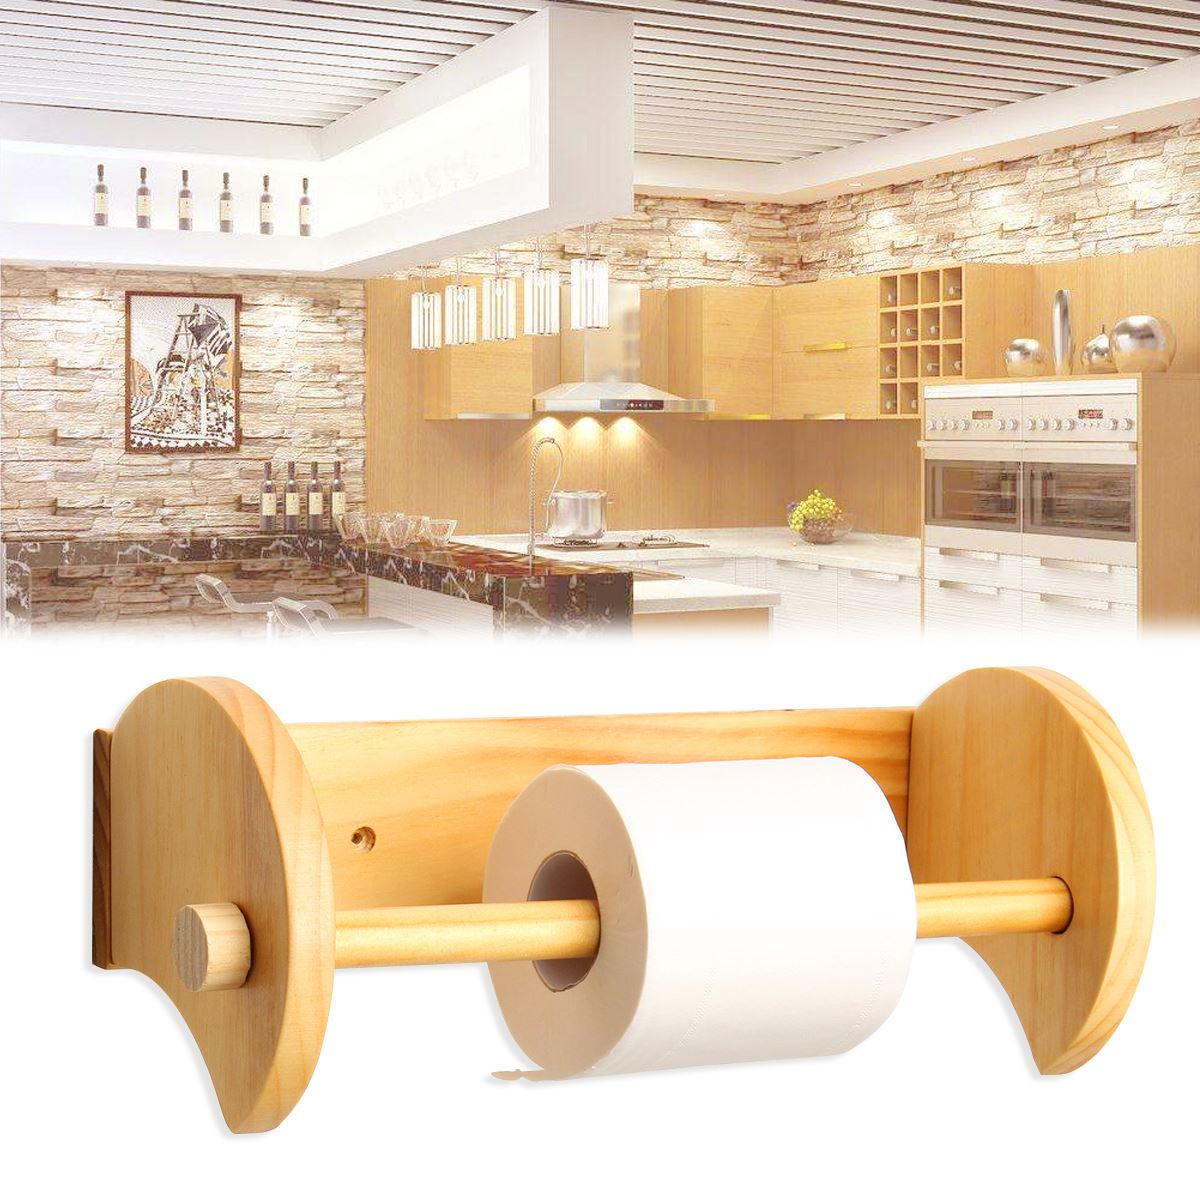 Kitchen Wall Racks And Storage Online Get Cheap Paper Wall Rack Aliexpresscom Alibaba Group